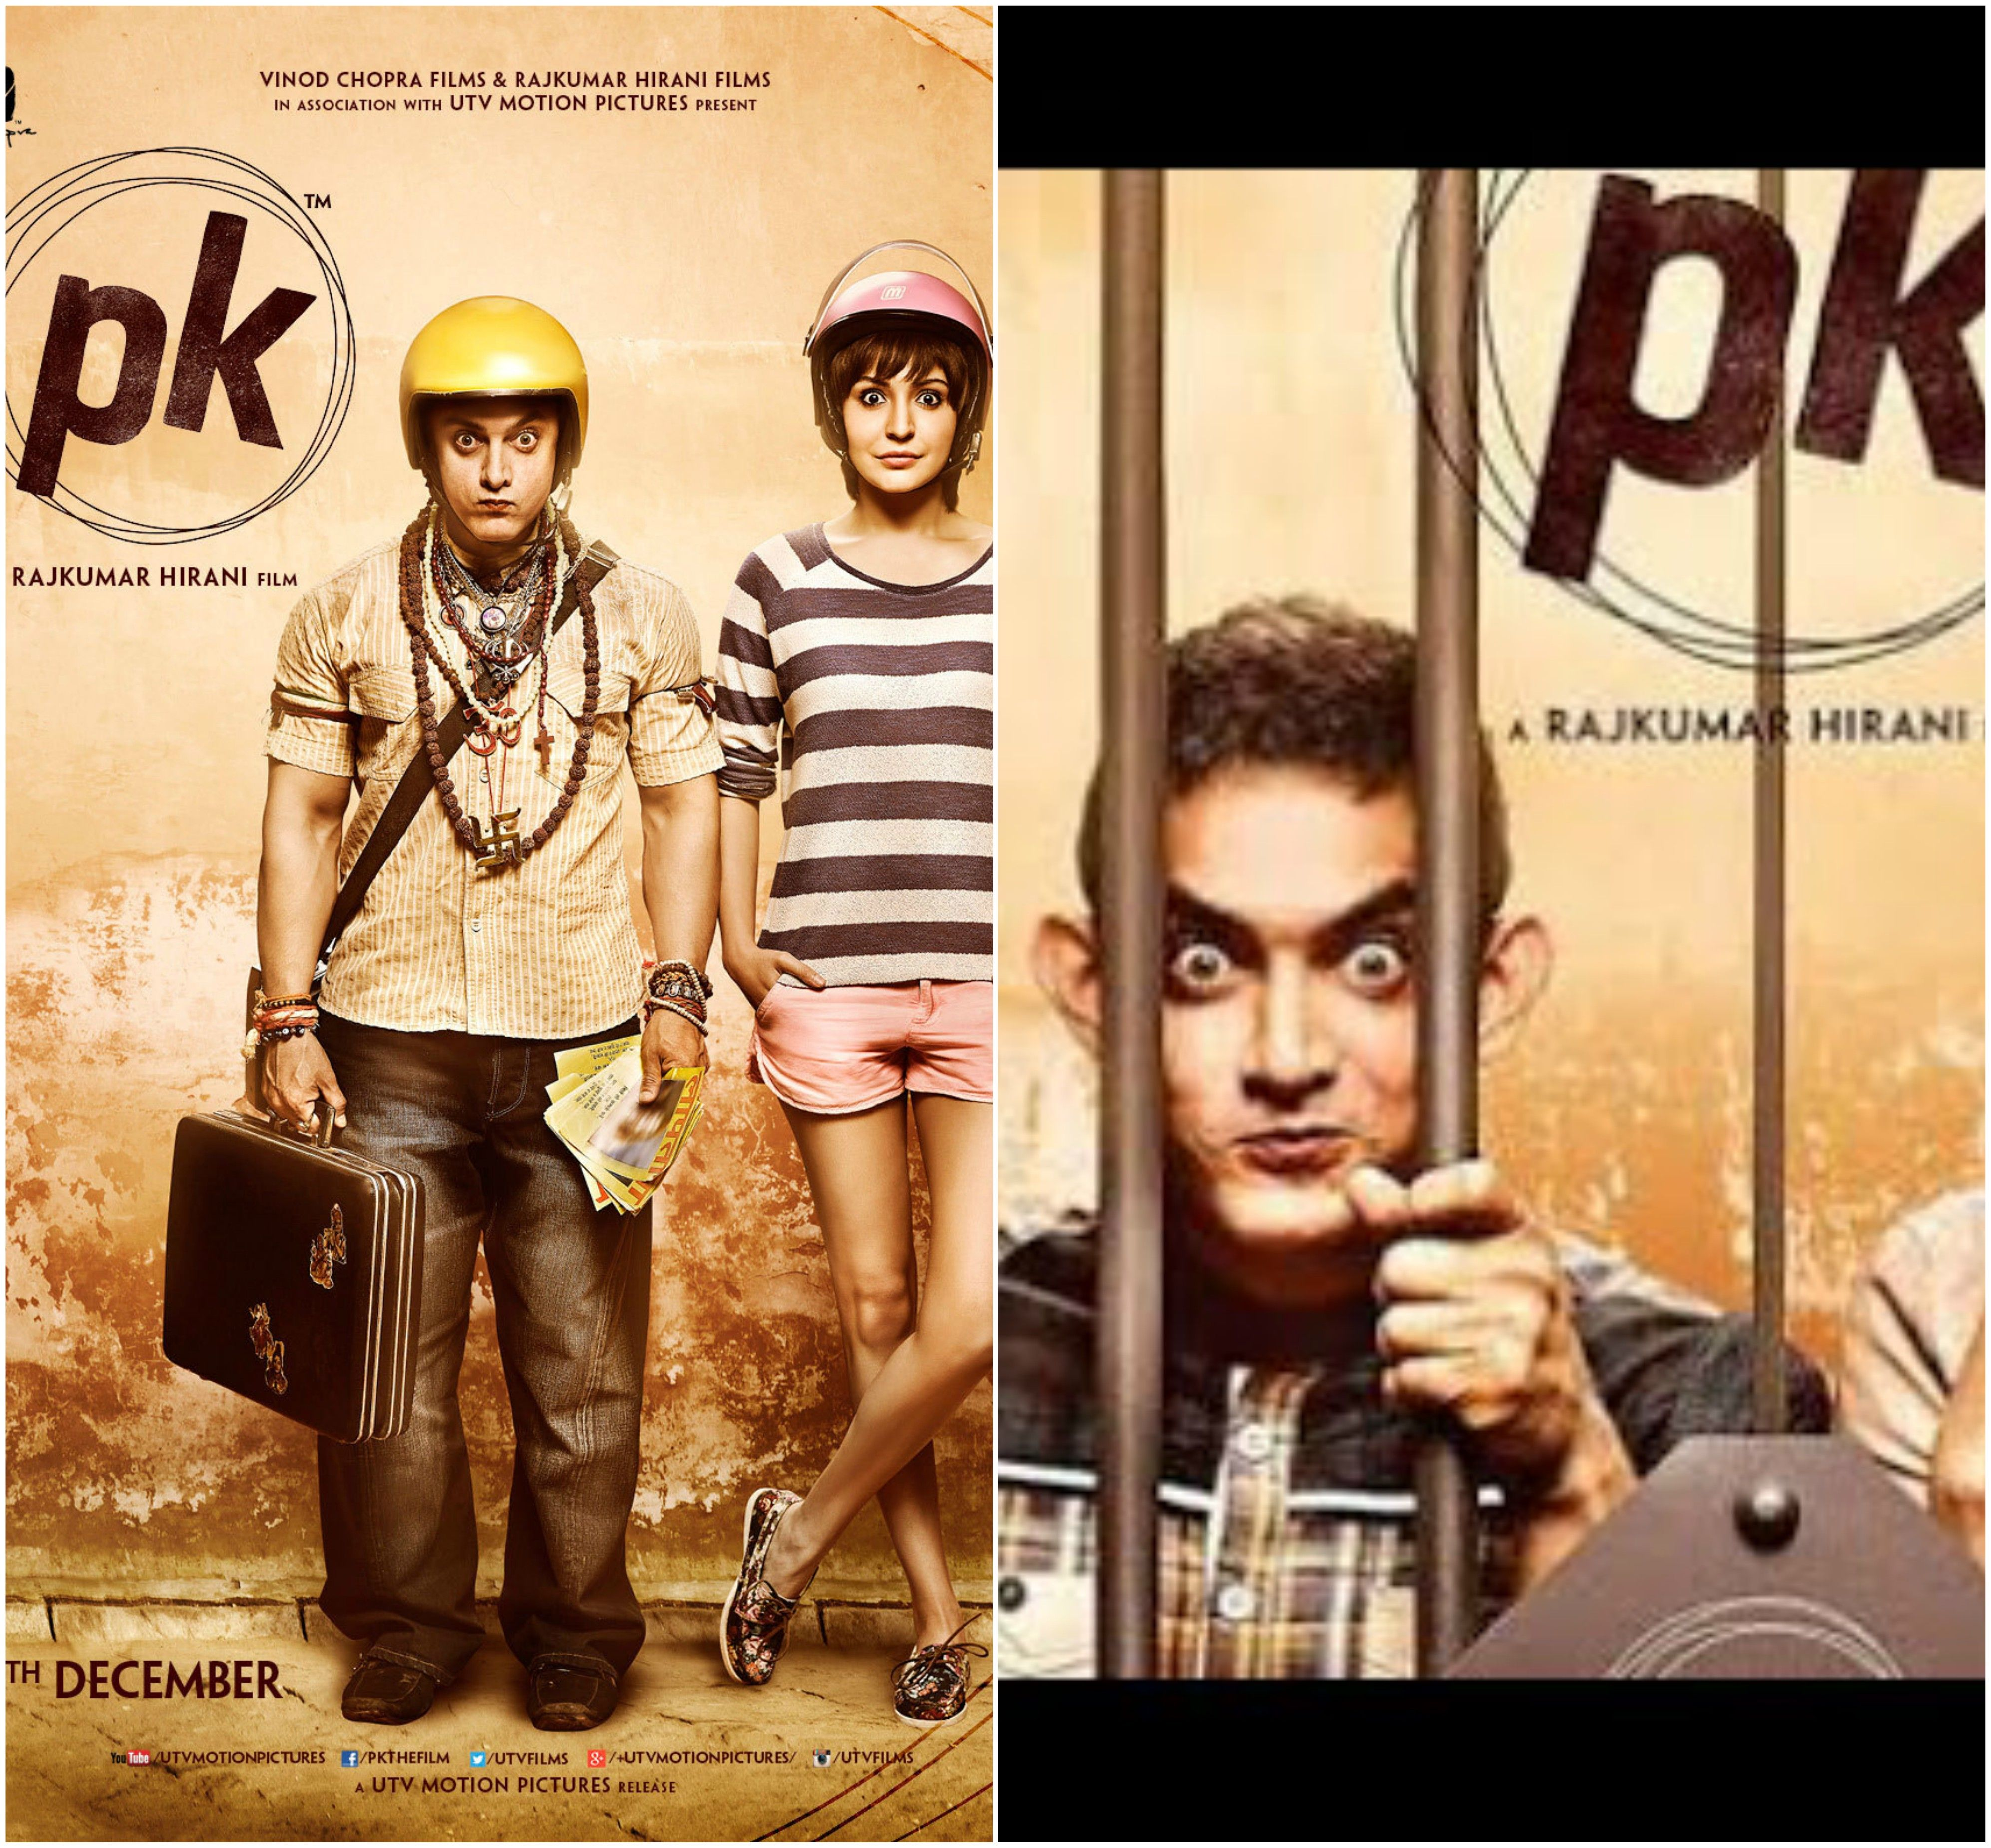 All new posters of PK featuring Aamir and Anushka